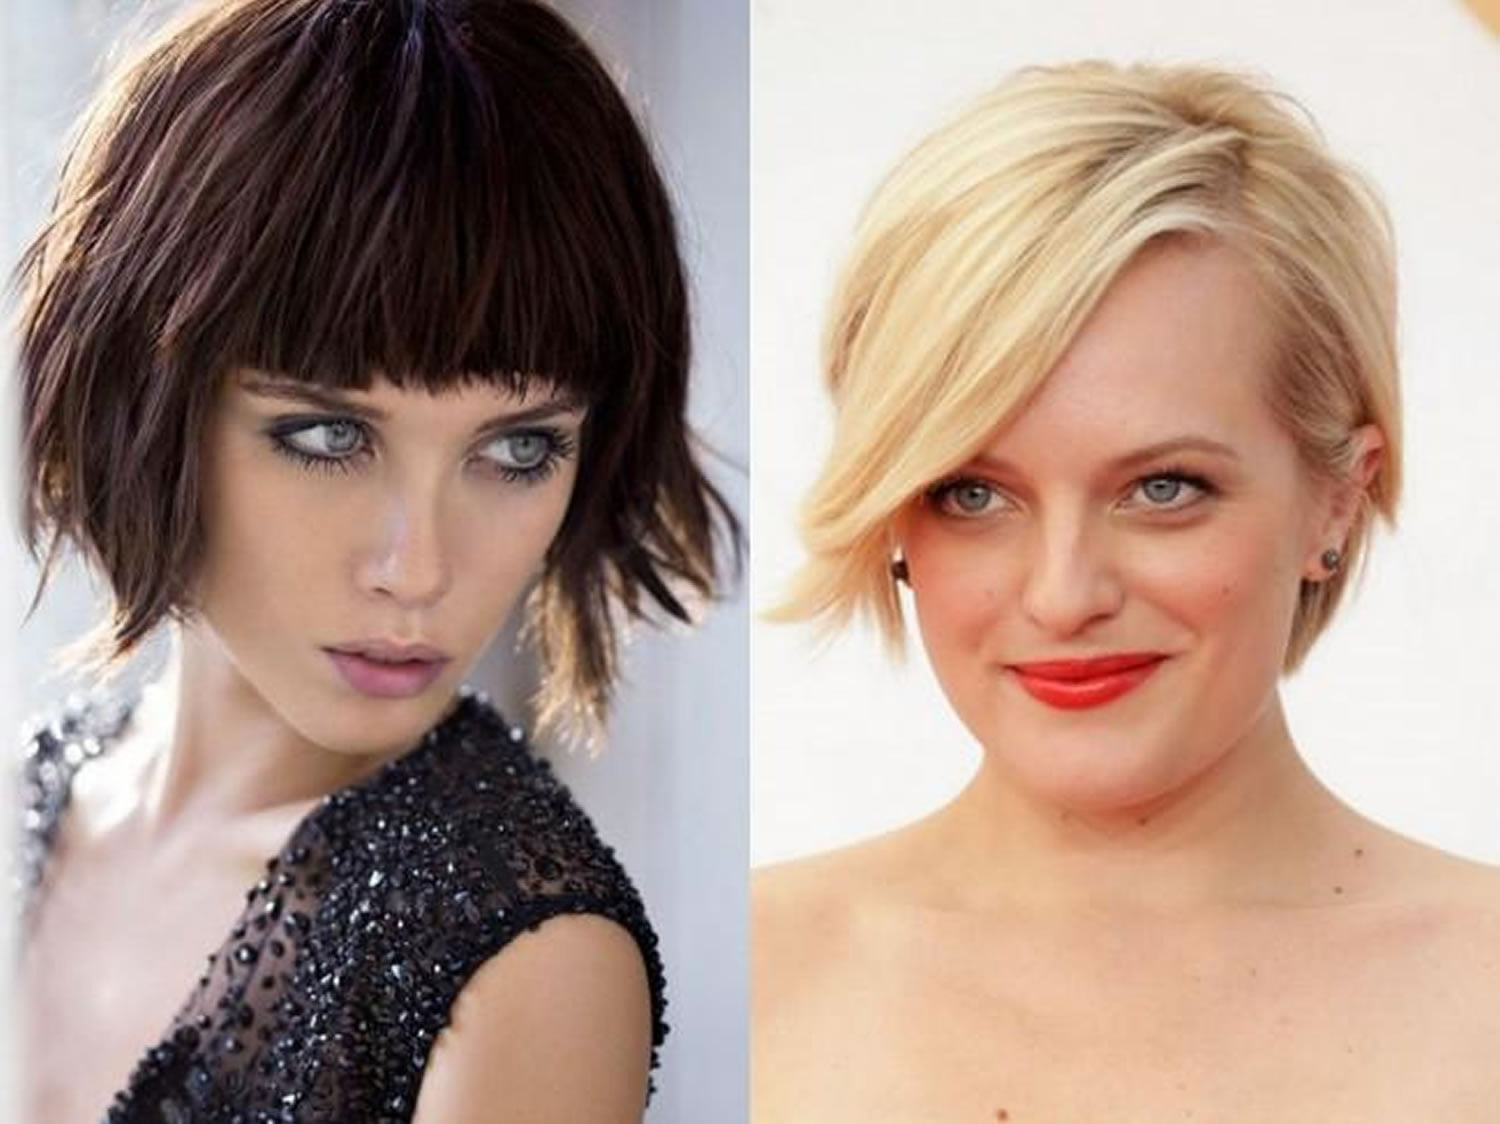 Short haircuts and hair color ideas for women for spring ...